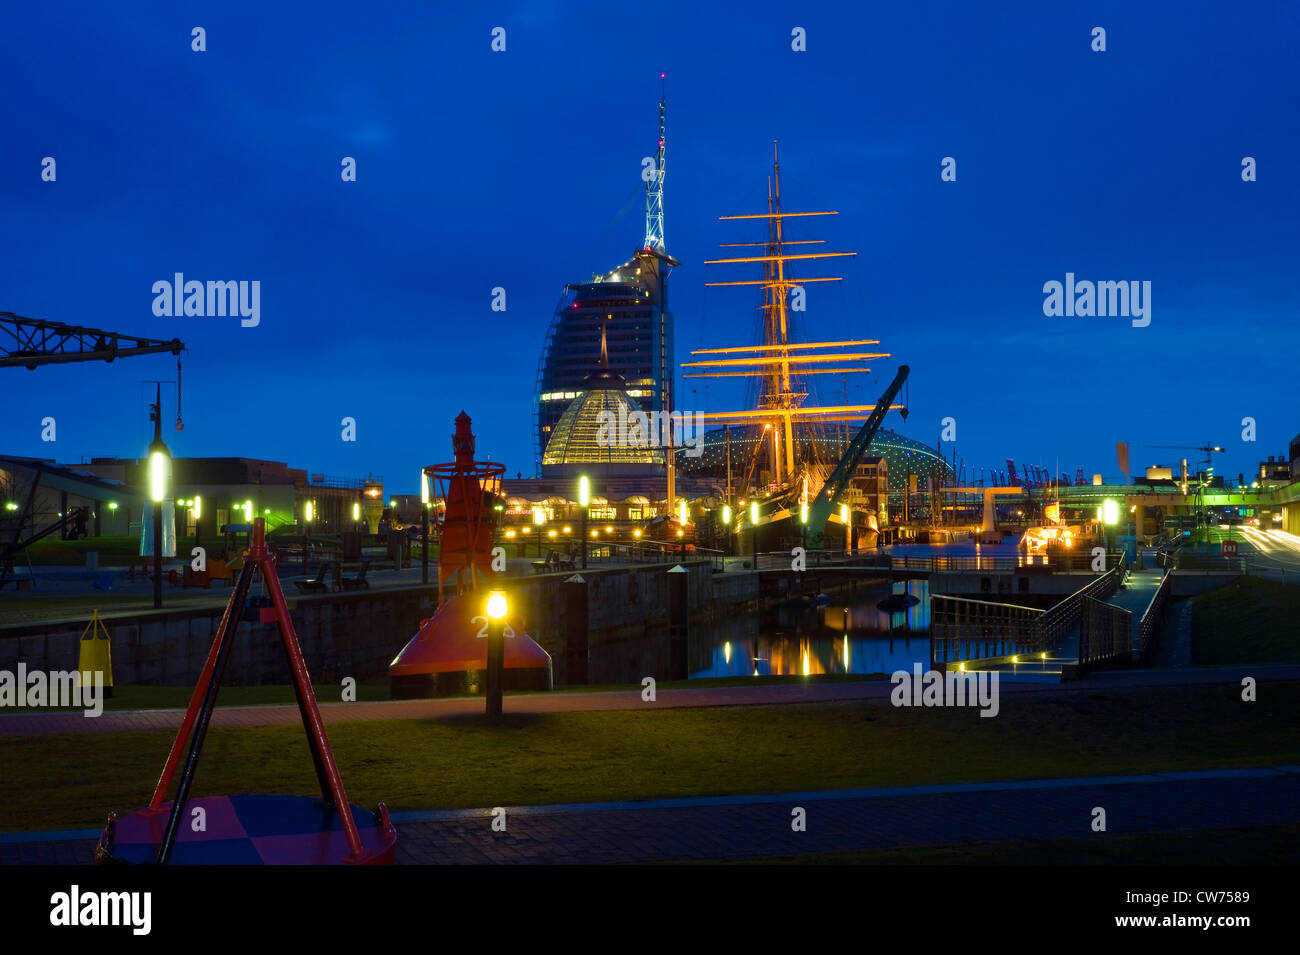 night shot of the German Maritime Museum (Deutsches Schiffahrtsmuseum), Germany, Freie Hansestadt Bremen, Bremerhaven Stock Photo